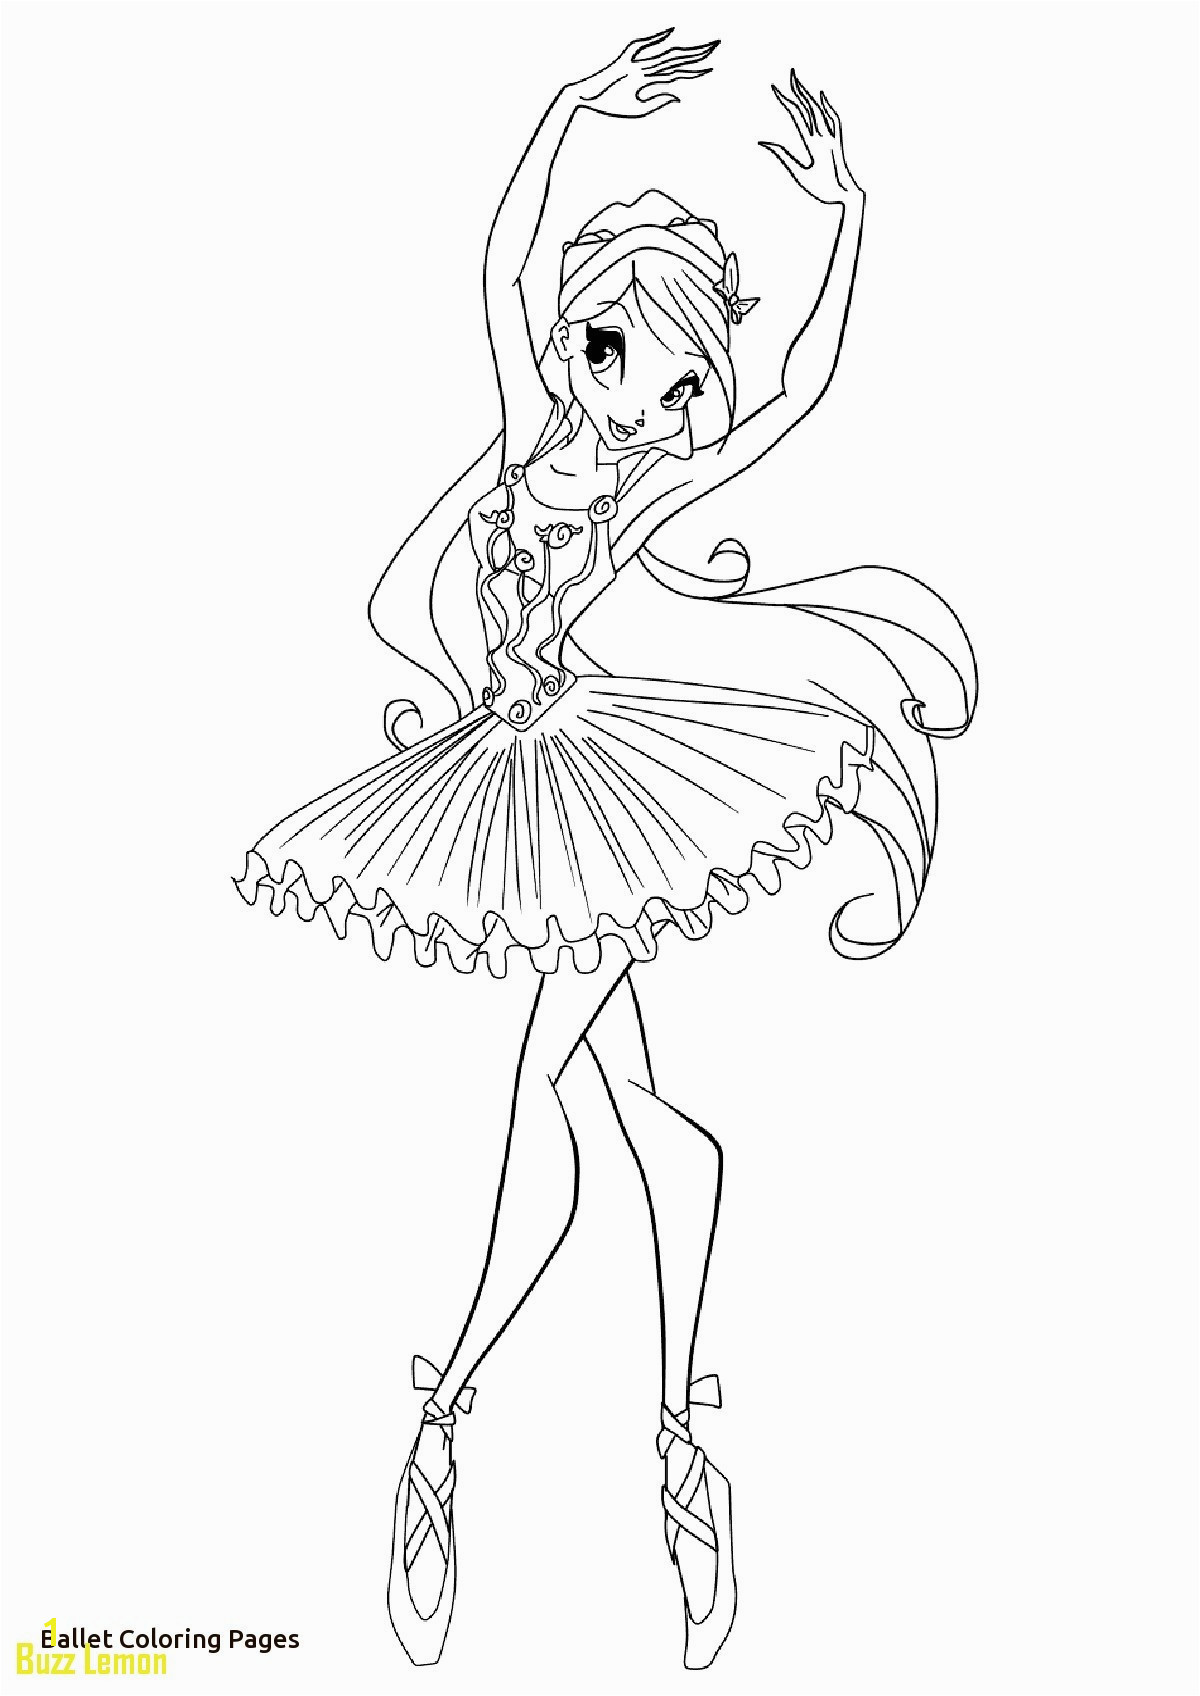 Ballerina Coloring Pages Pdf Ballerina Coloring Pages